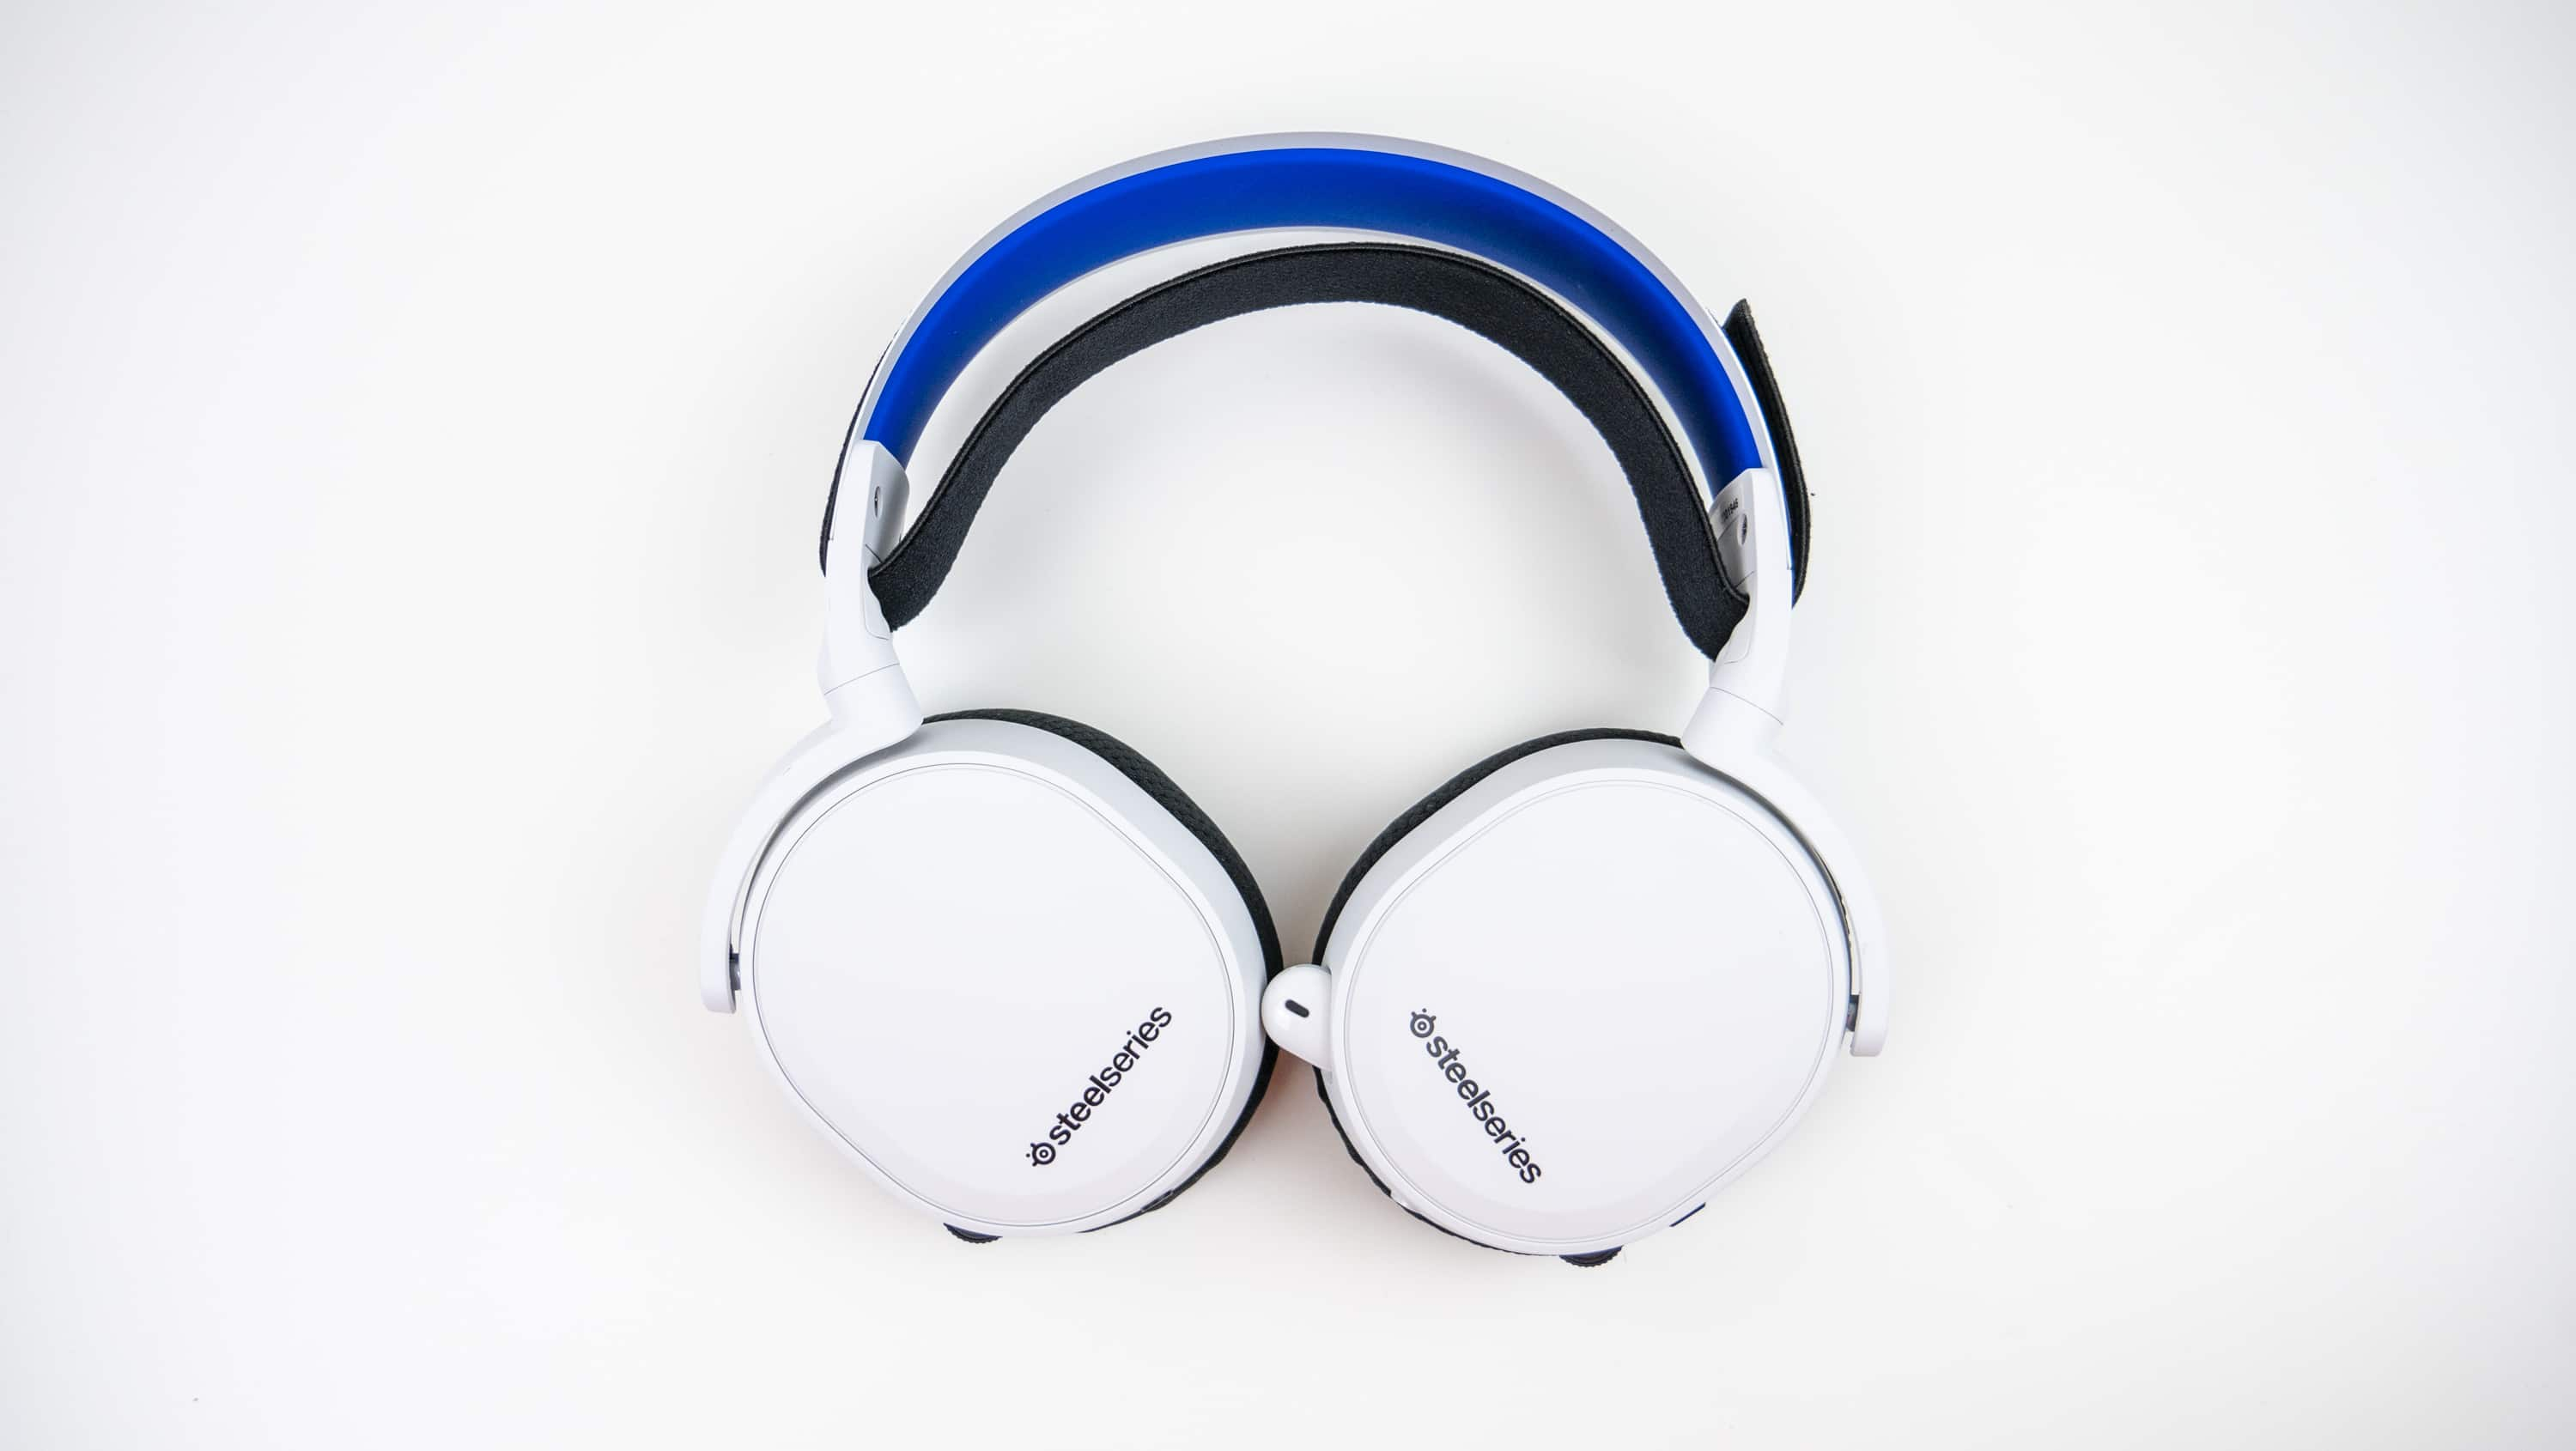 Well-known headset with a new coat of paint - The Arctis 7P in test